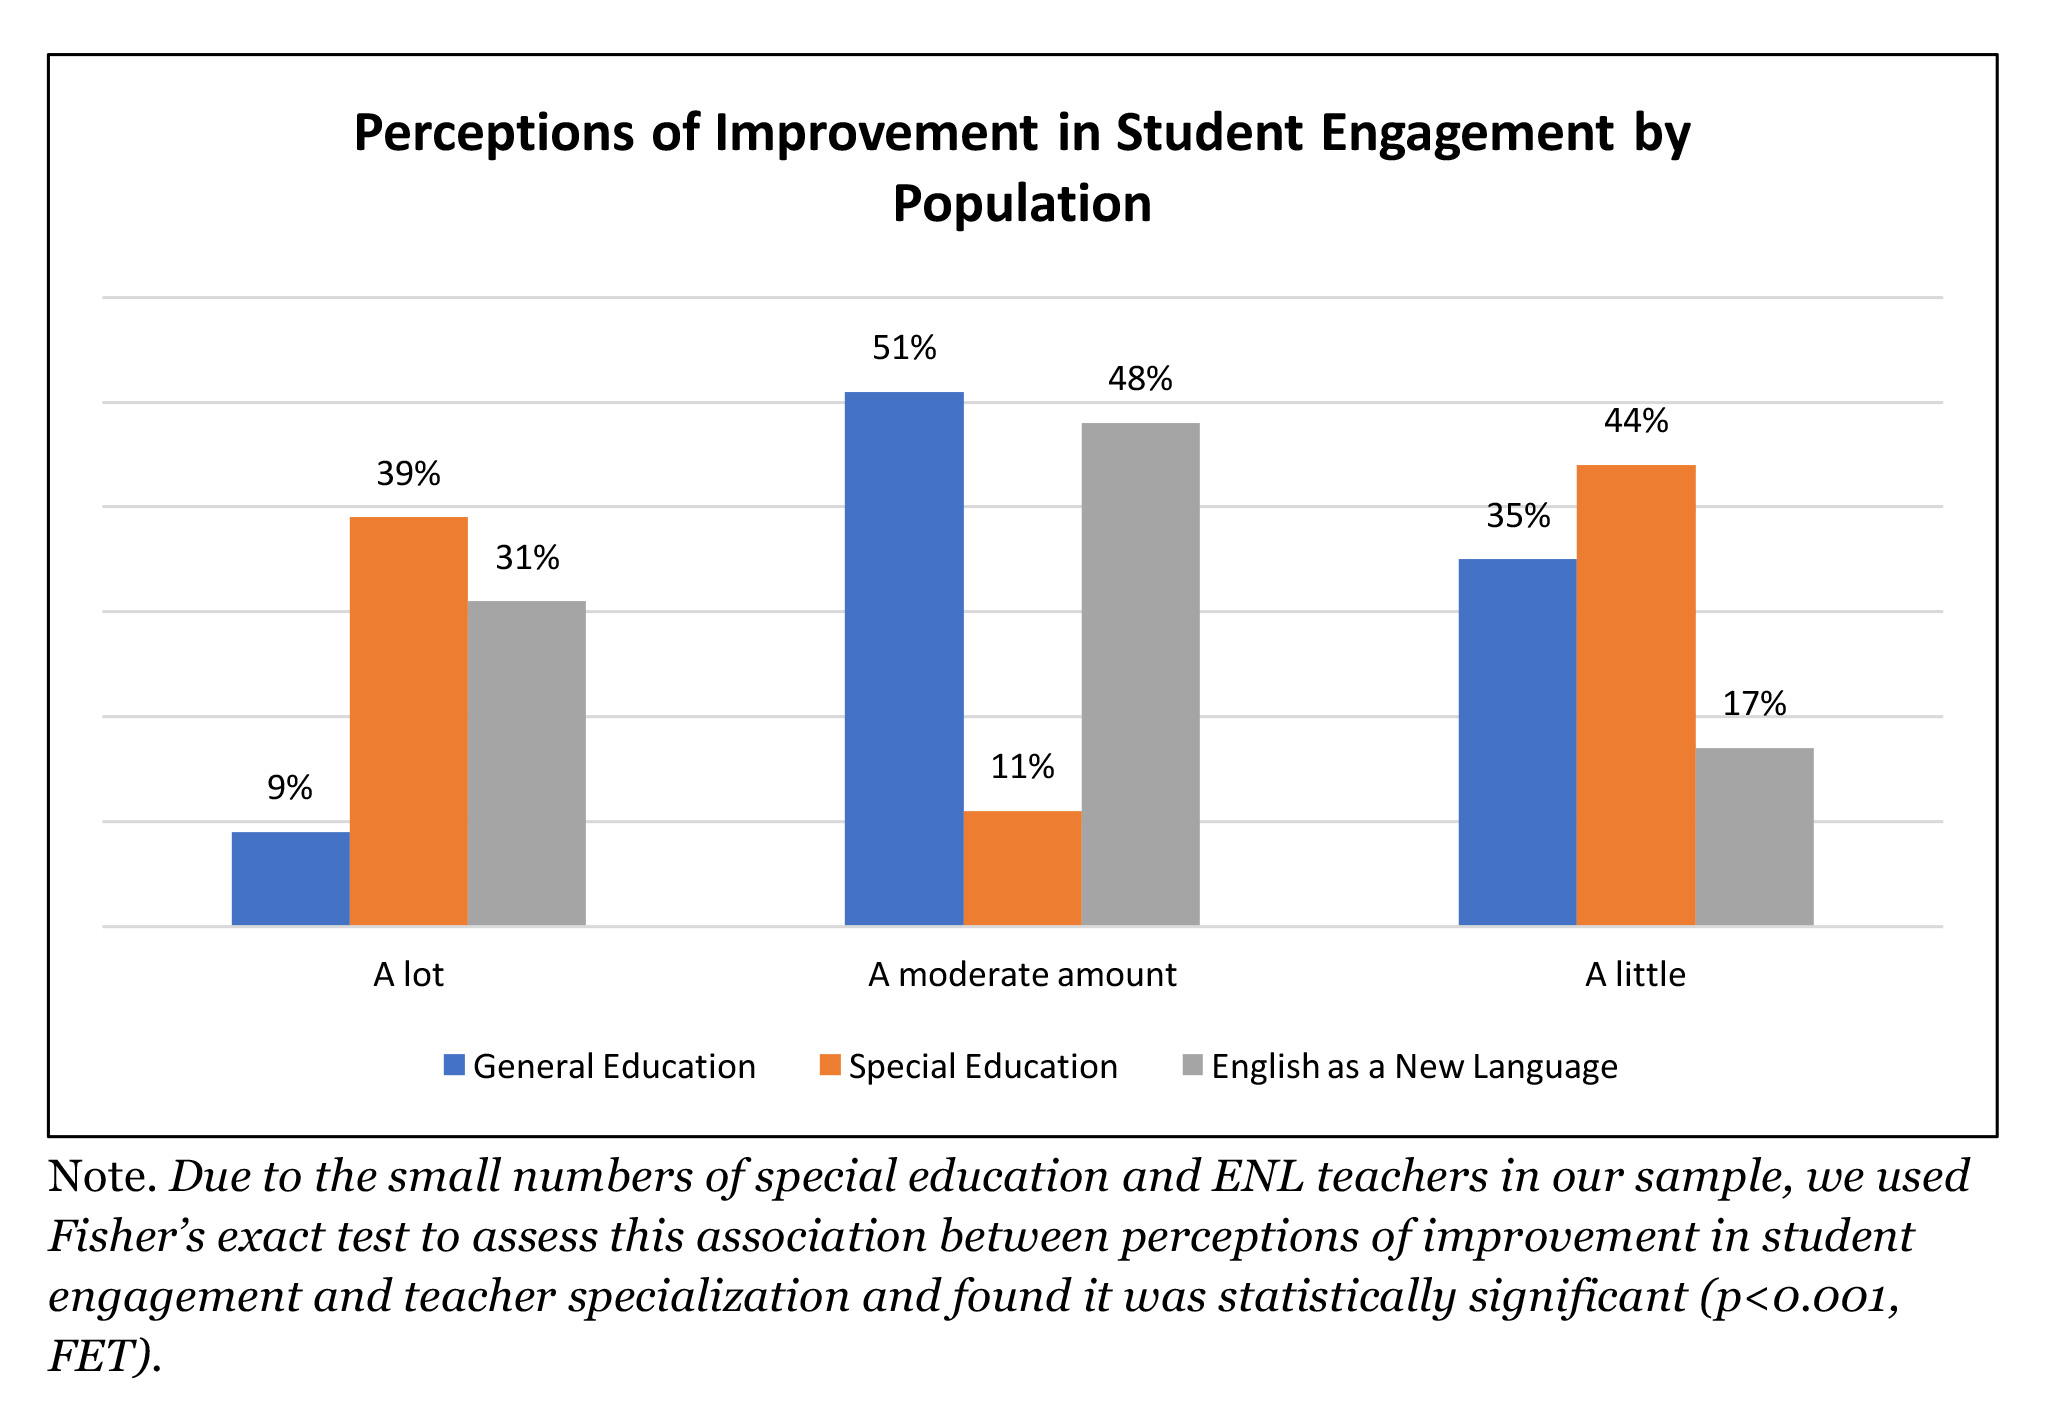 Perceptions of Improvement in Student Engagement by Population